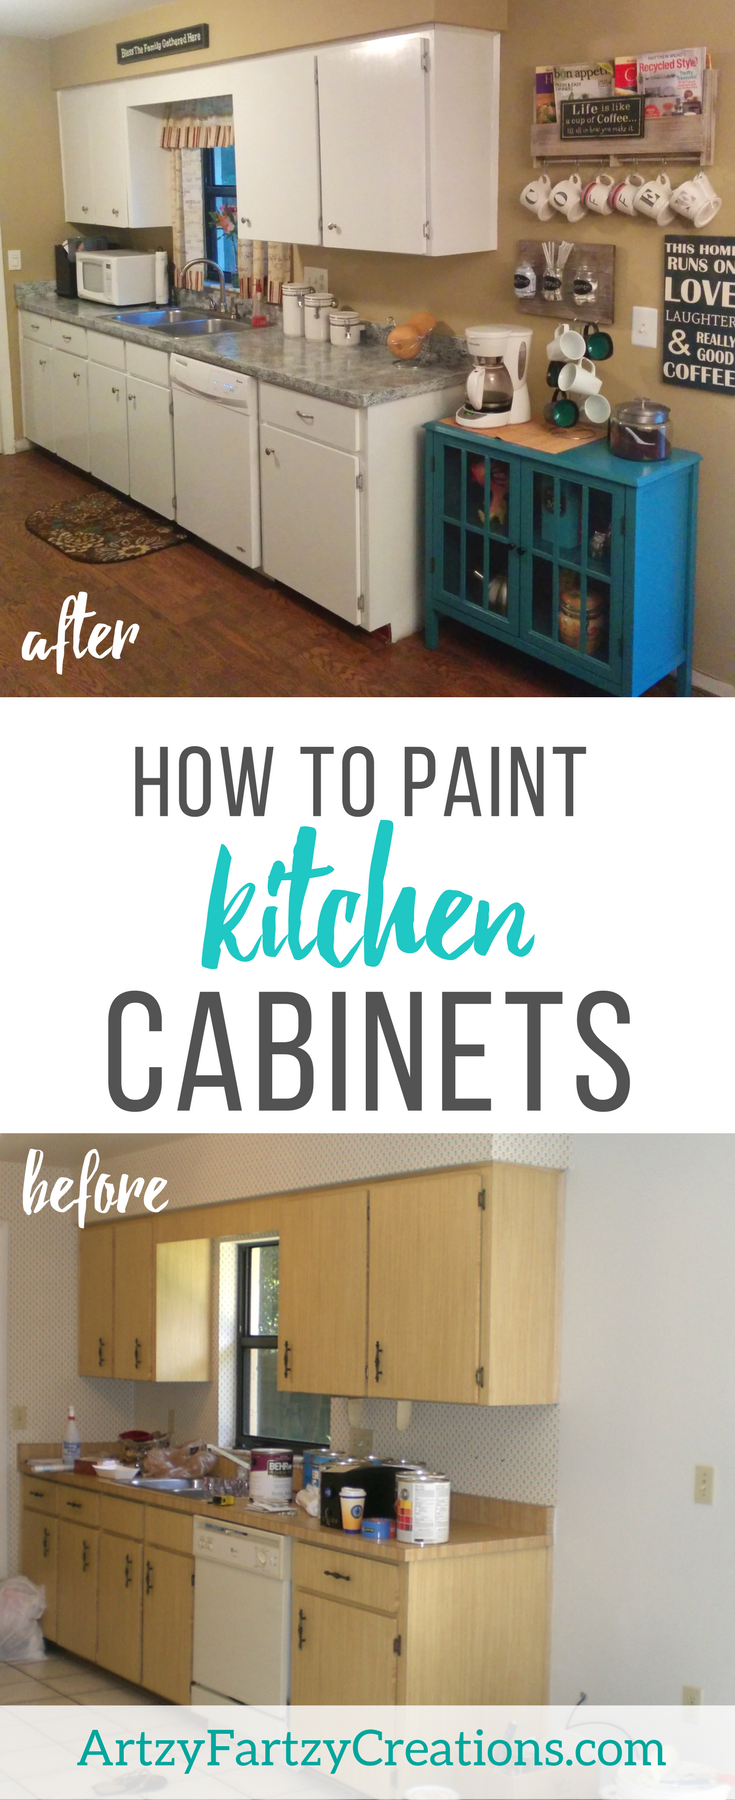 How to Paint Kitchen Cabinets FREE